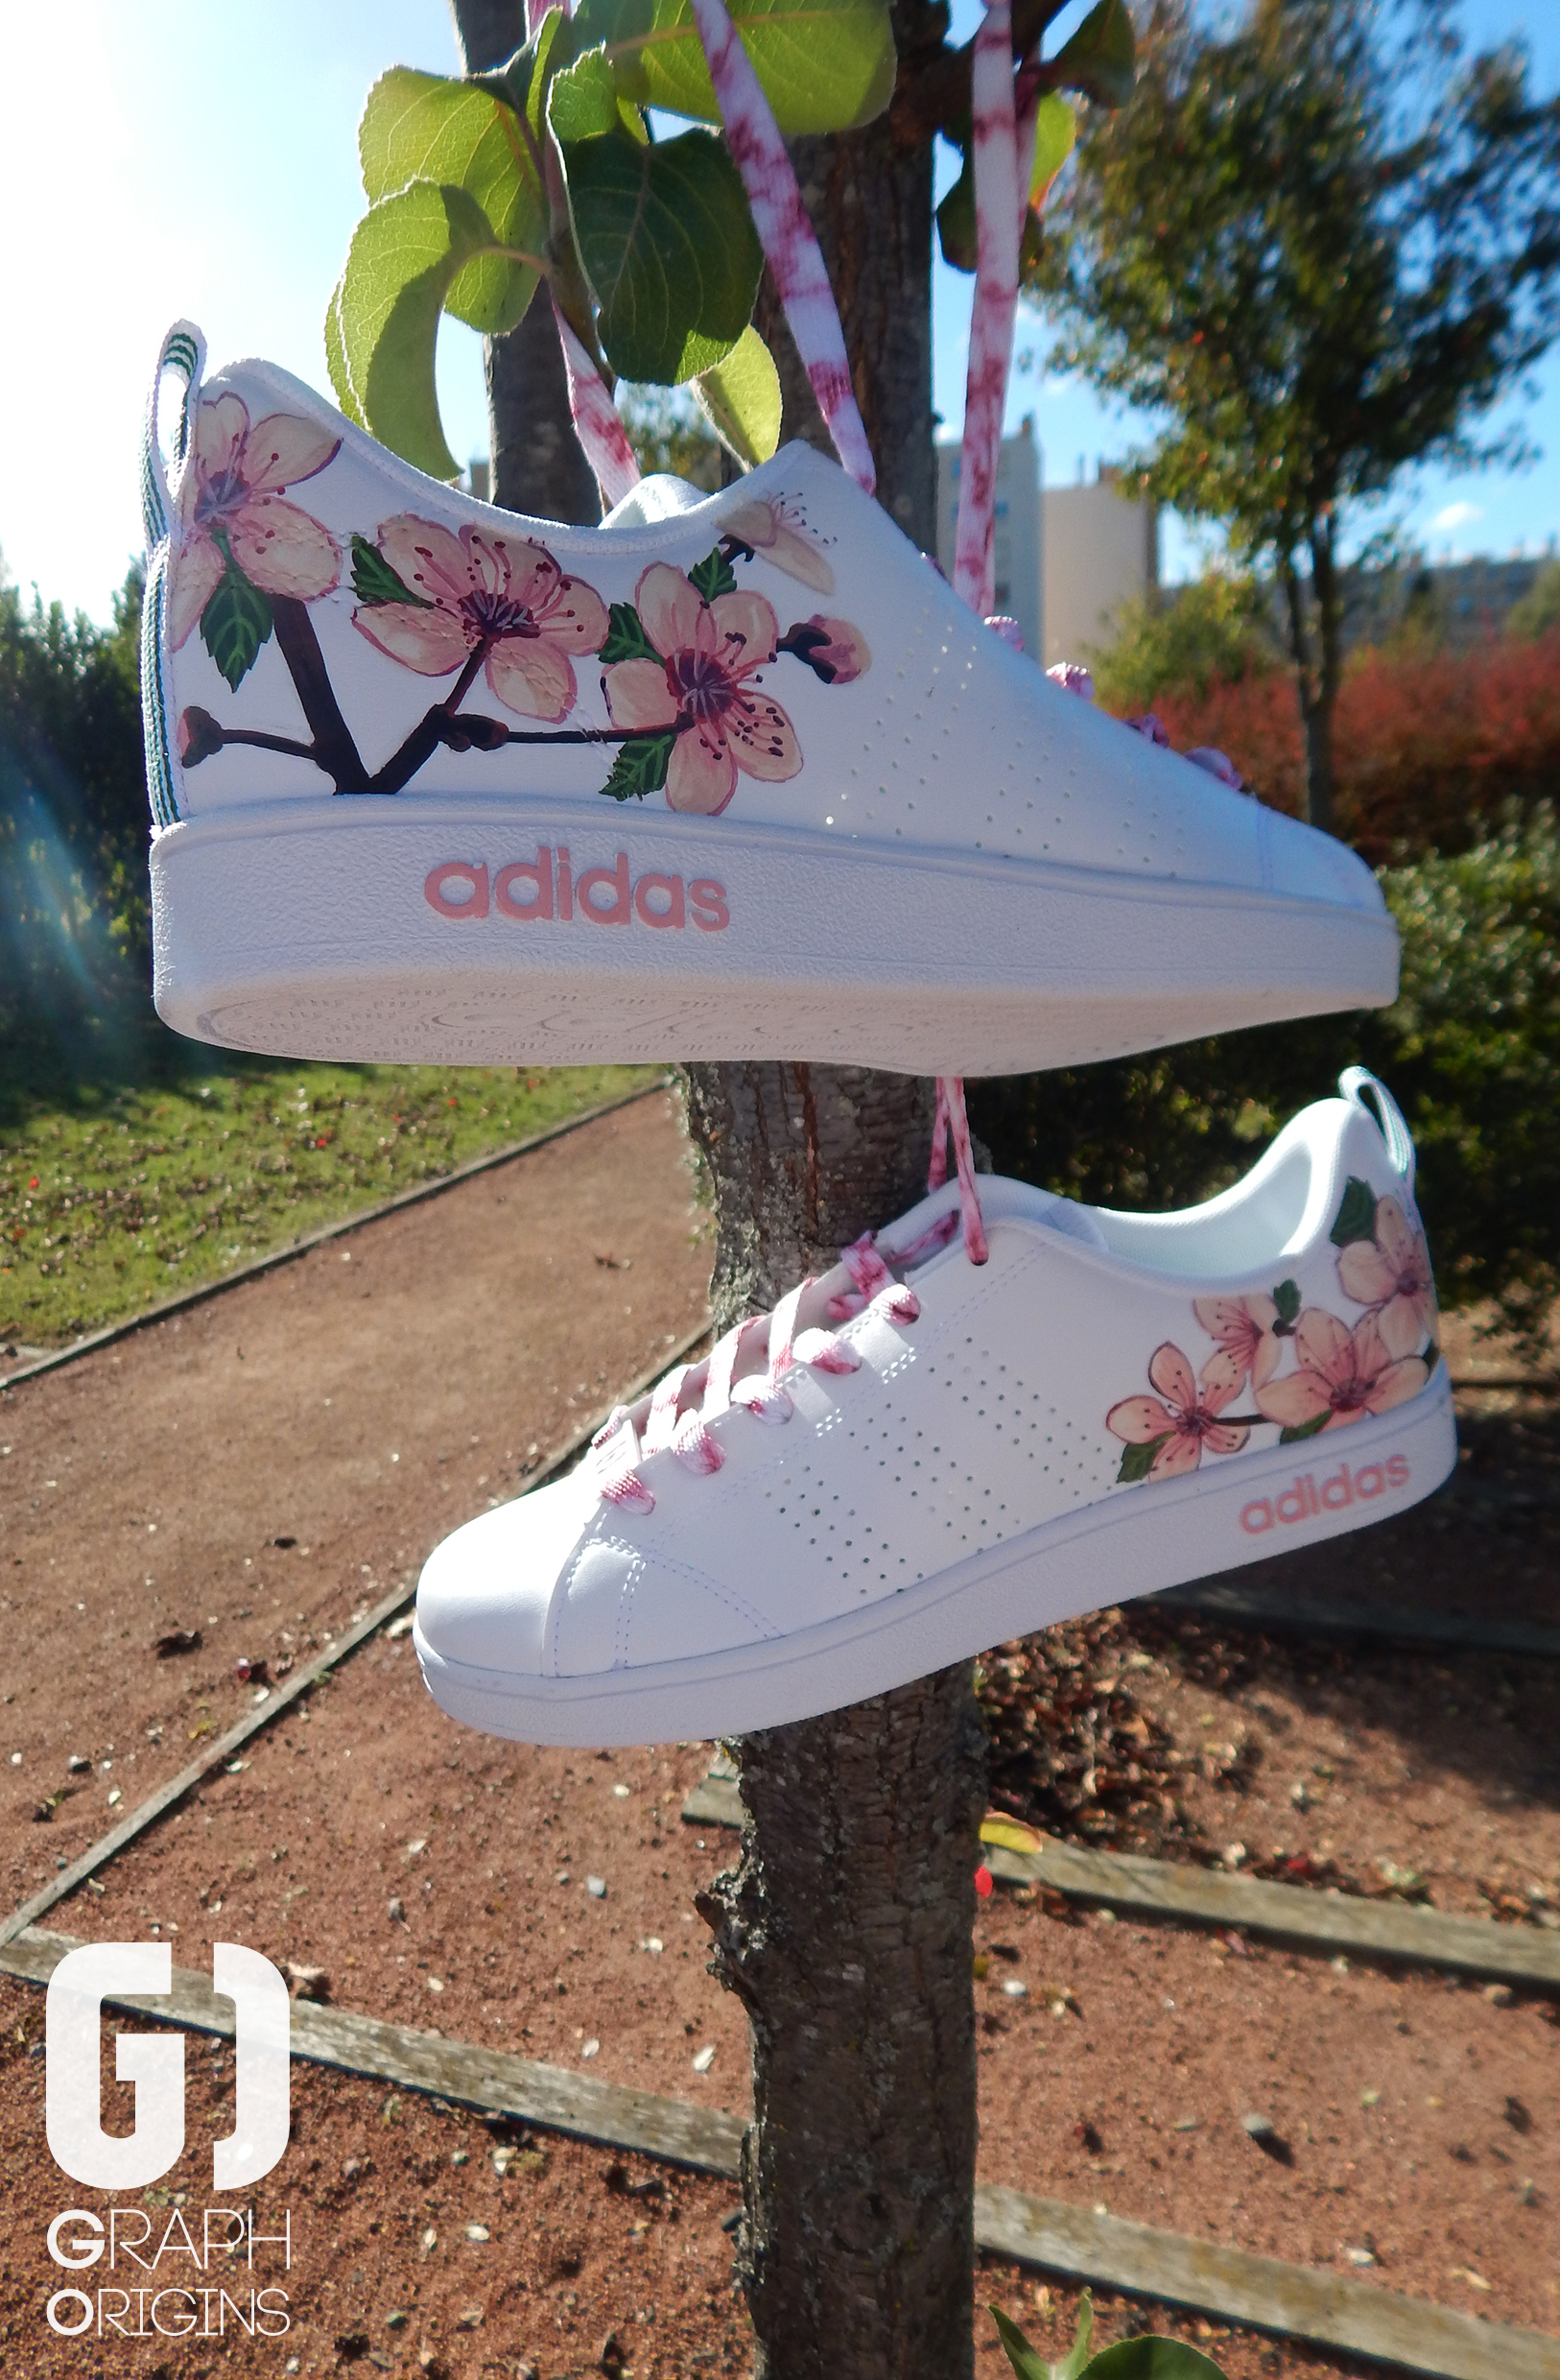 Custom baskets adidas neo cherry flower graph origins 5